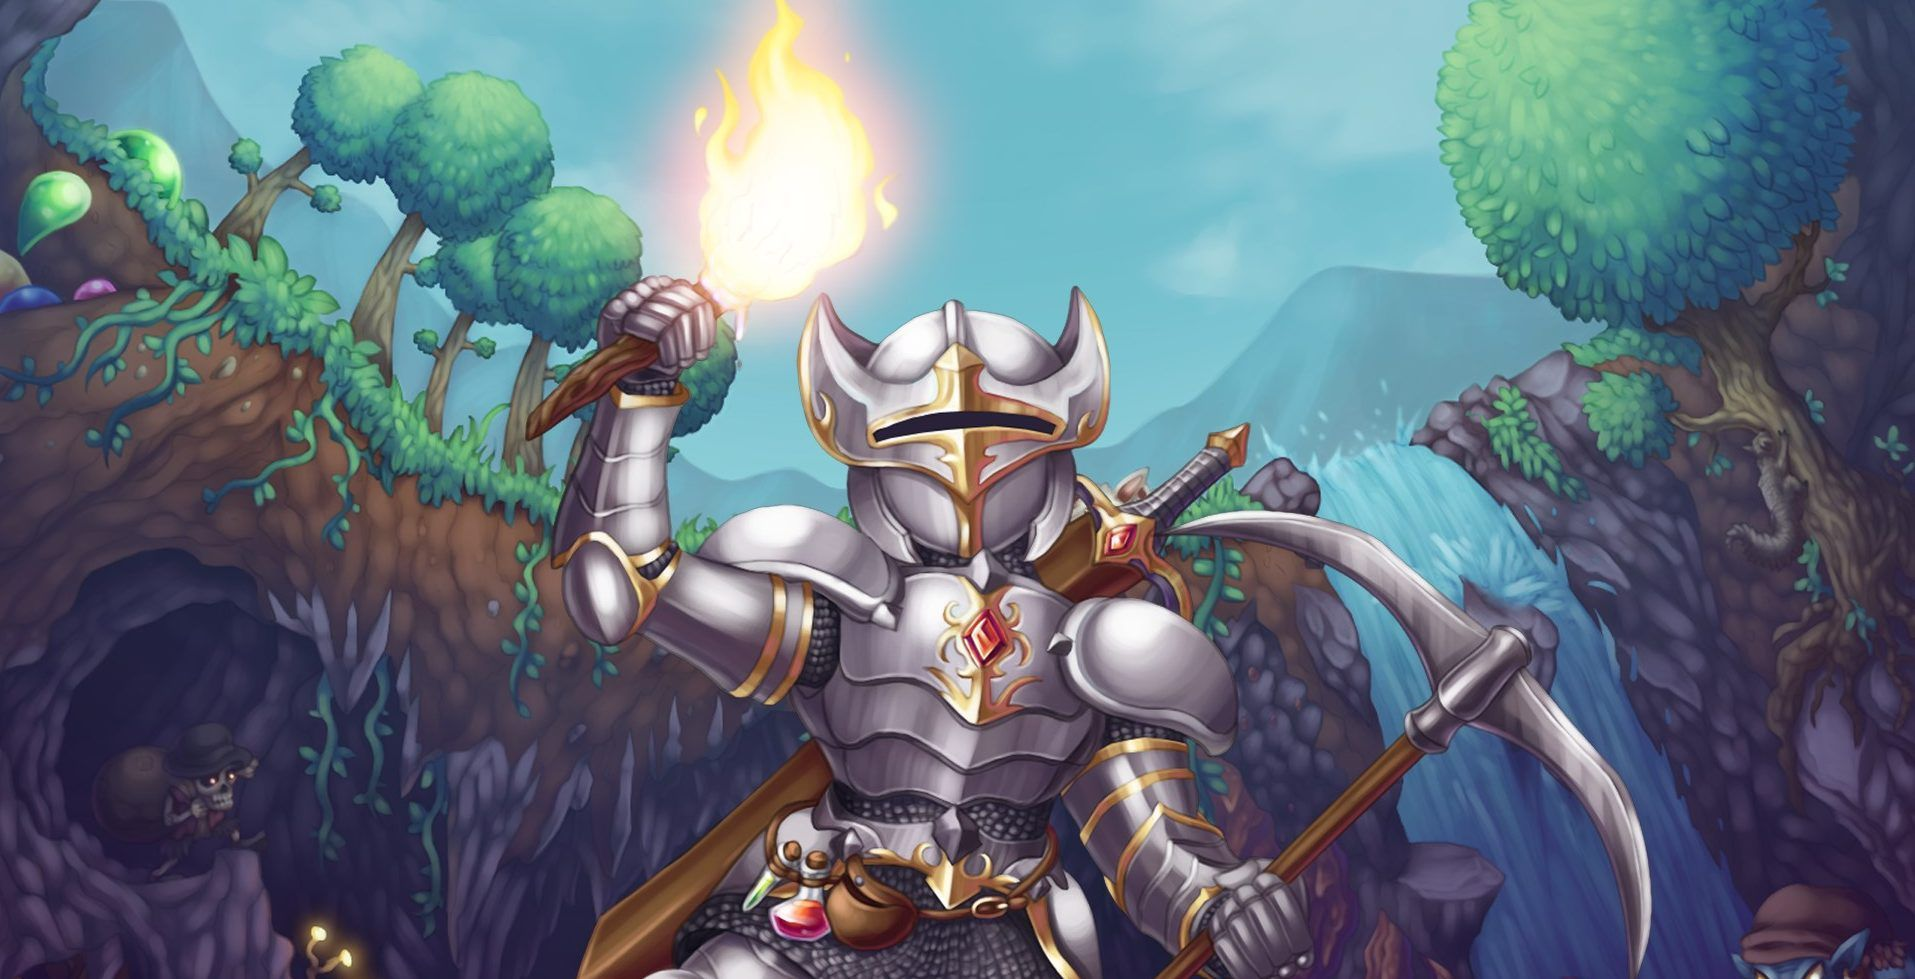 Terraria Devs Equate Signing Epic Exclusivity With 'Selling